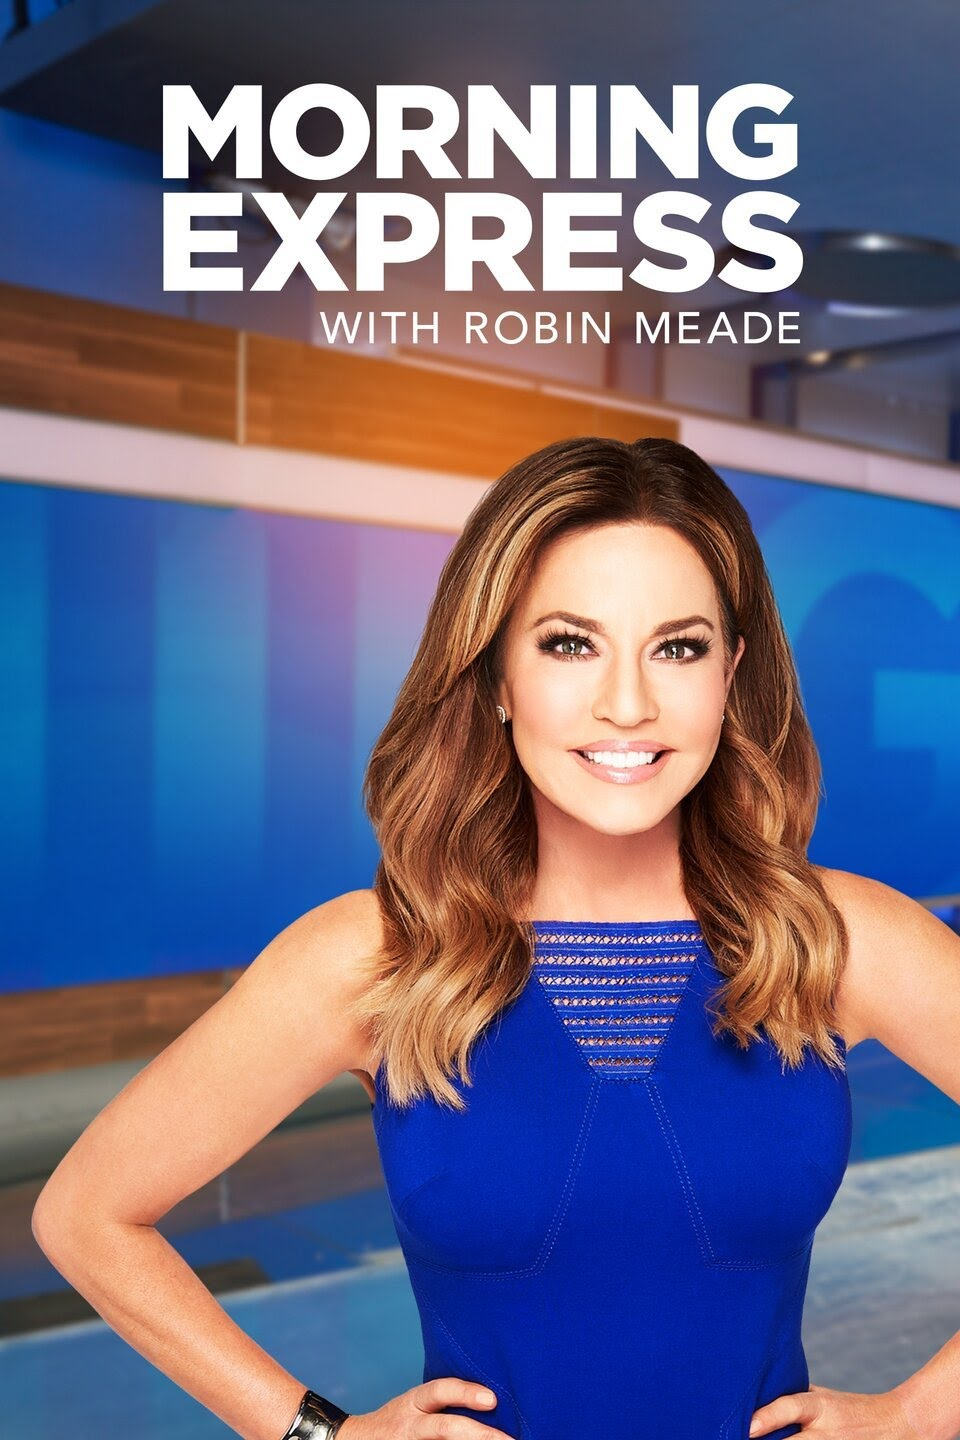 Morning Express with Robin Meade (TV Series 2005– ) - IMDb